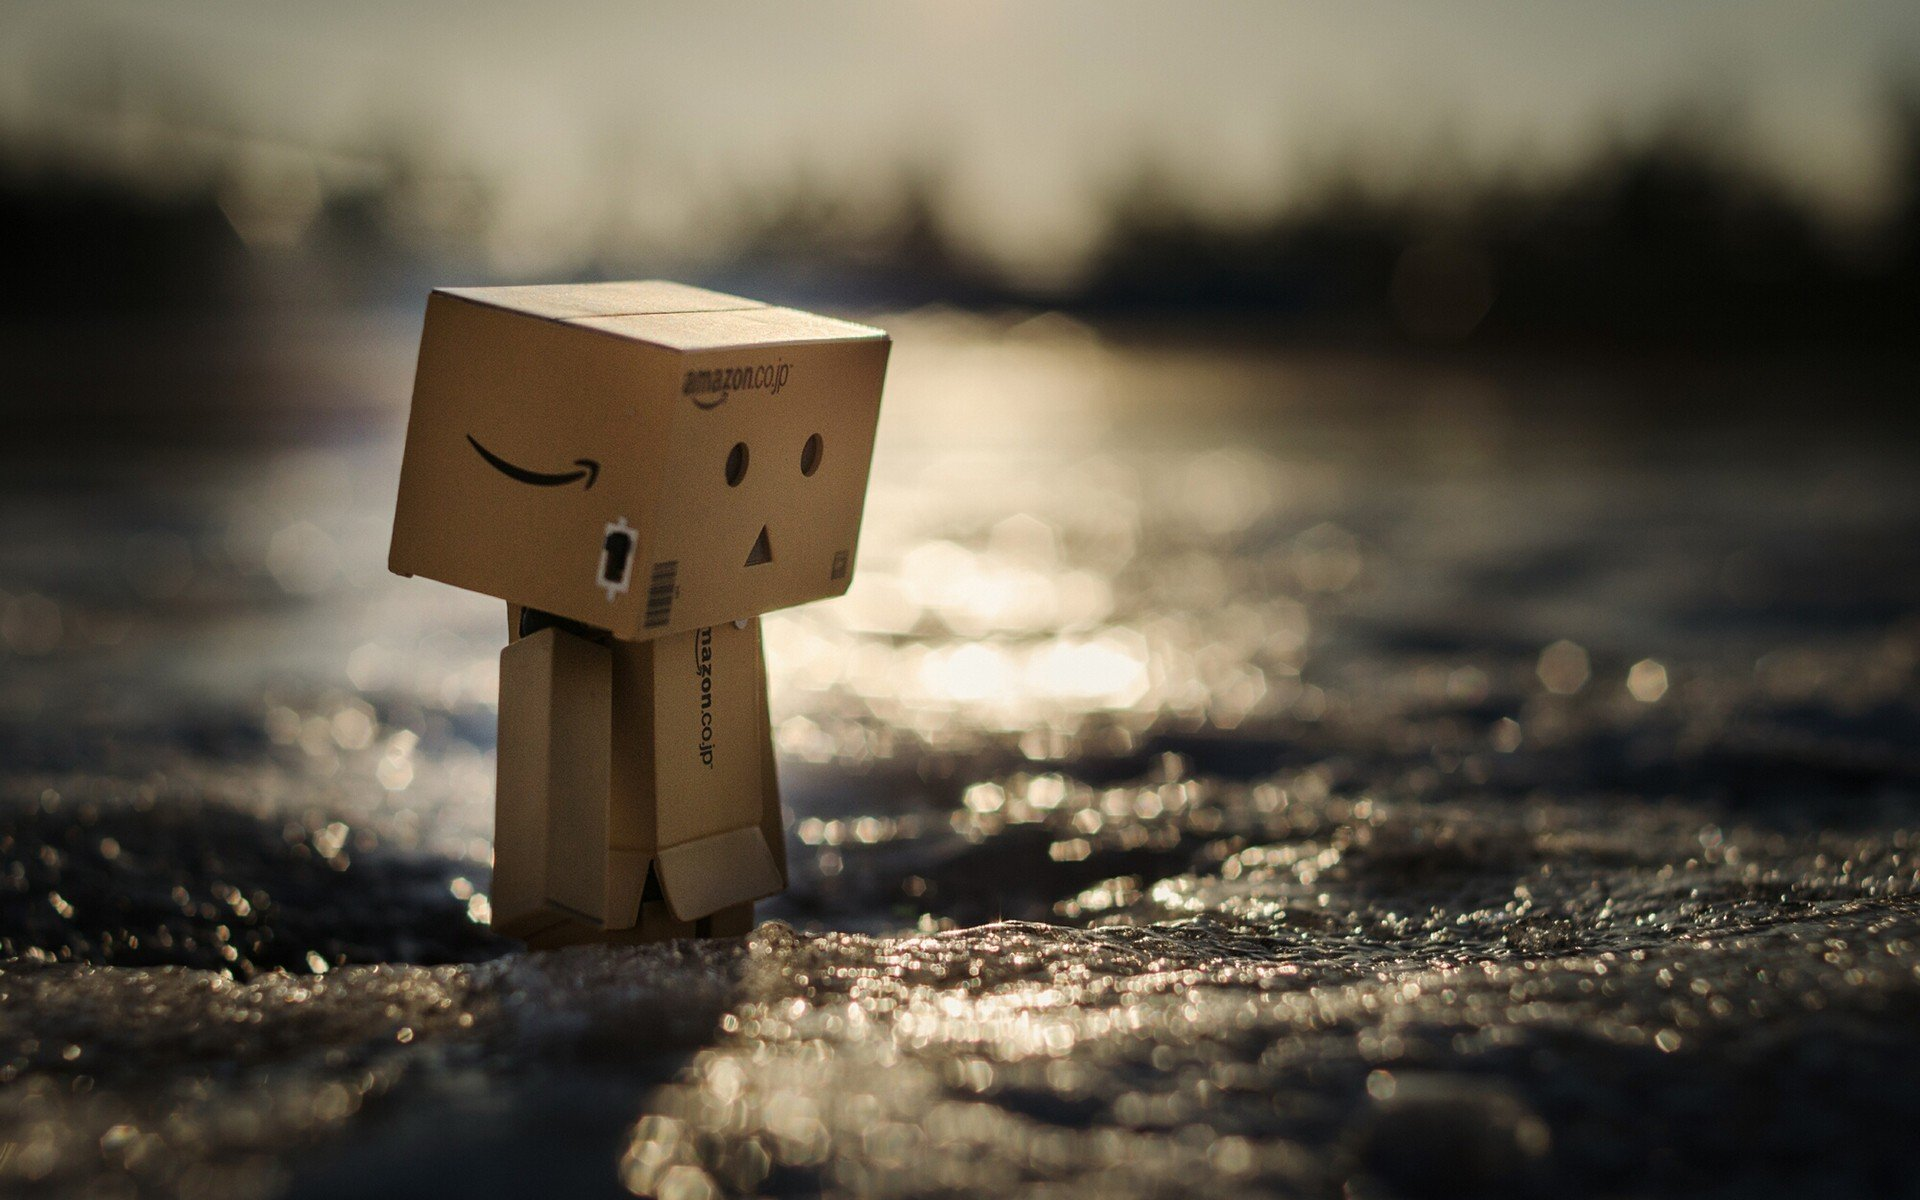 Danbo Hd Wallpapers Desktop And Mobile Images Amp Photos